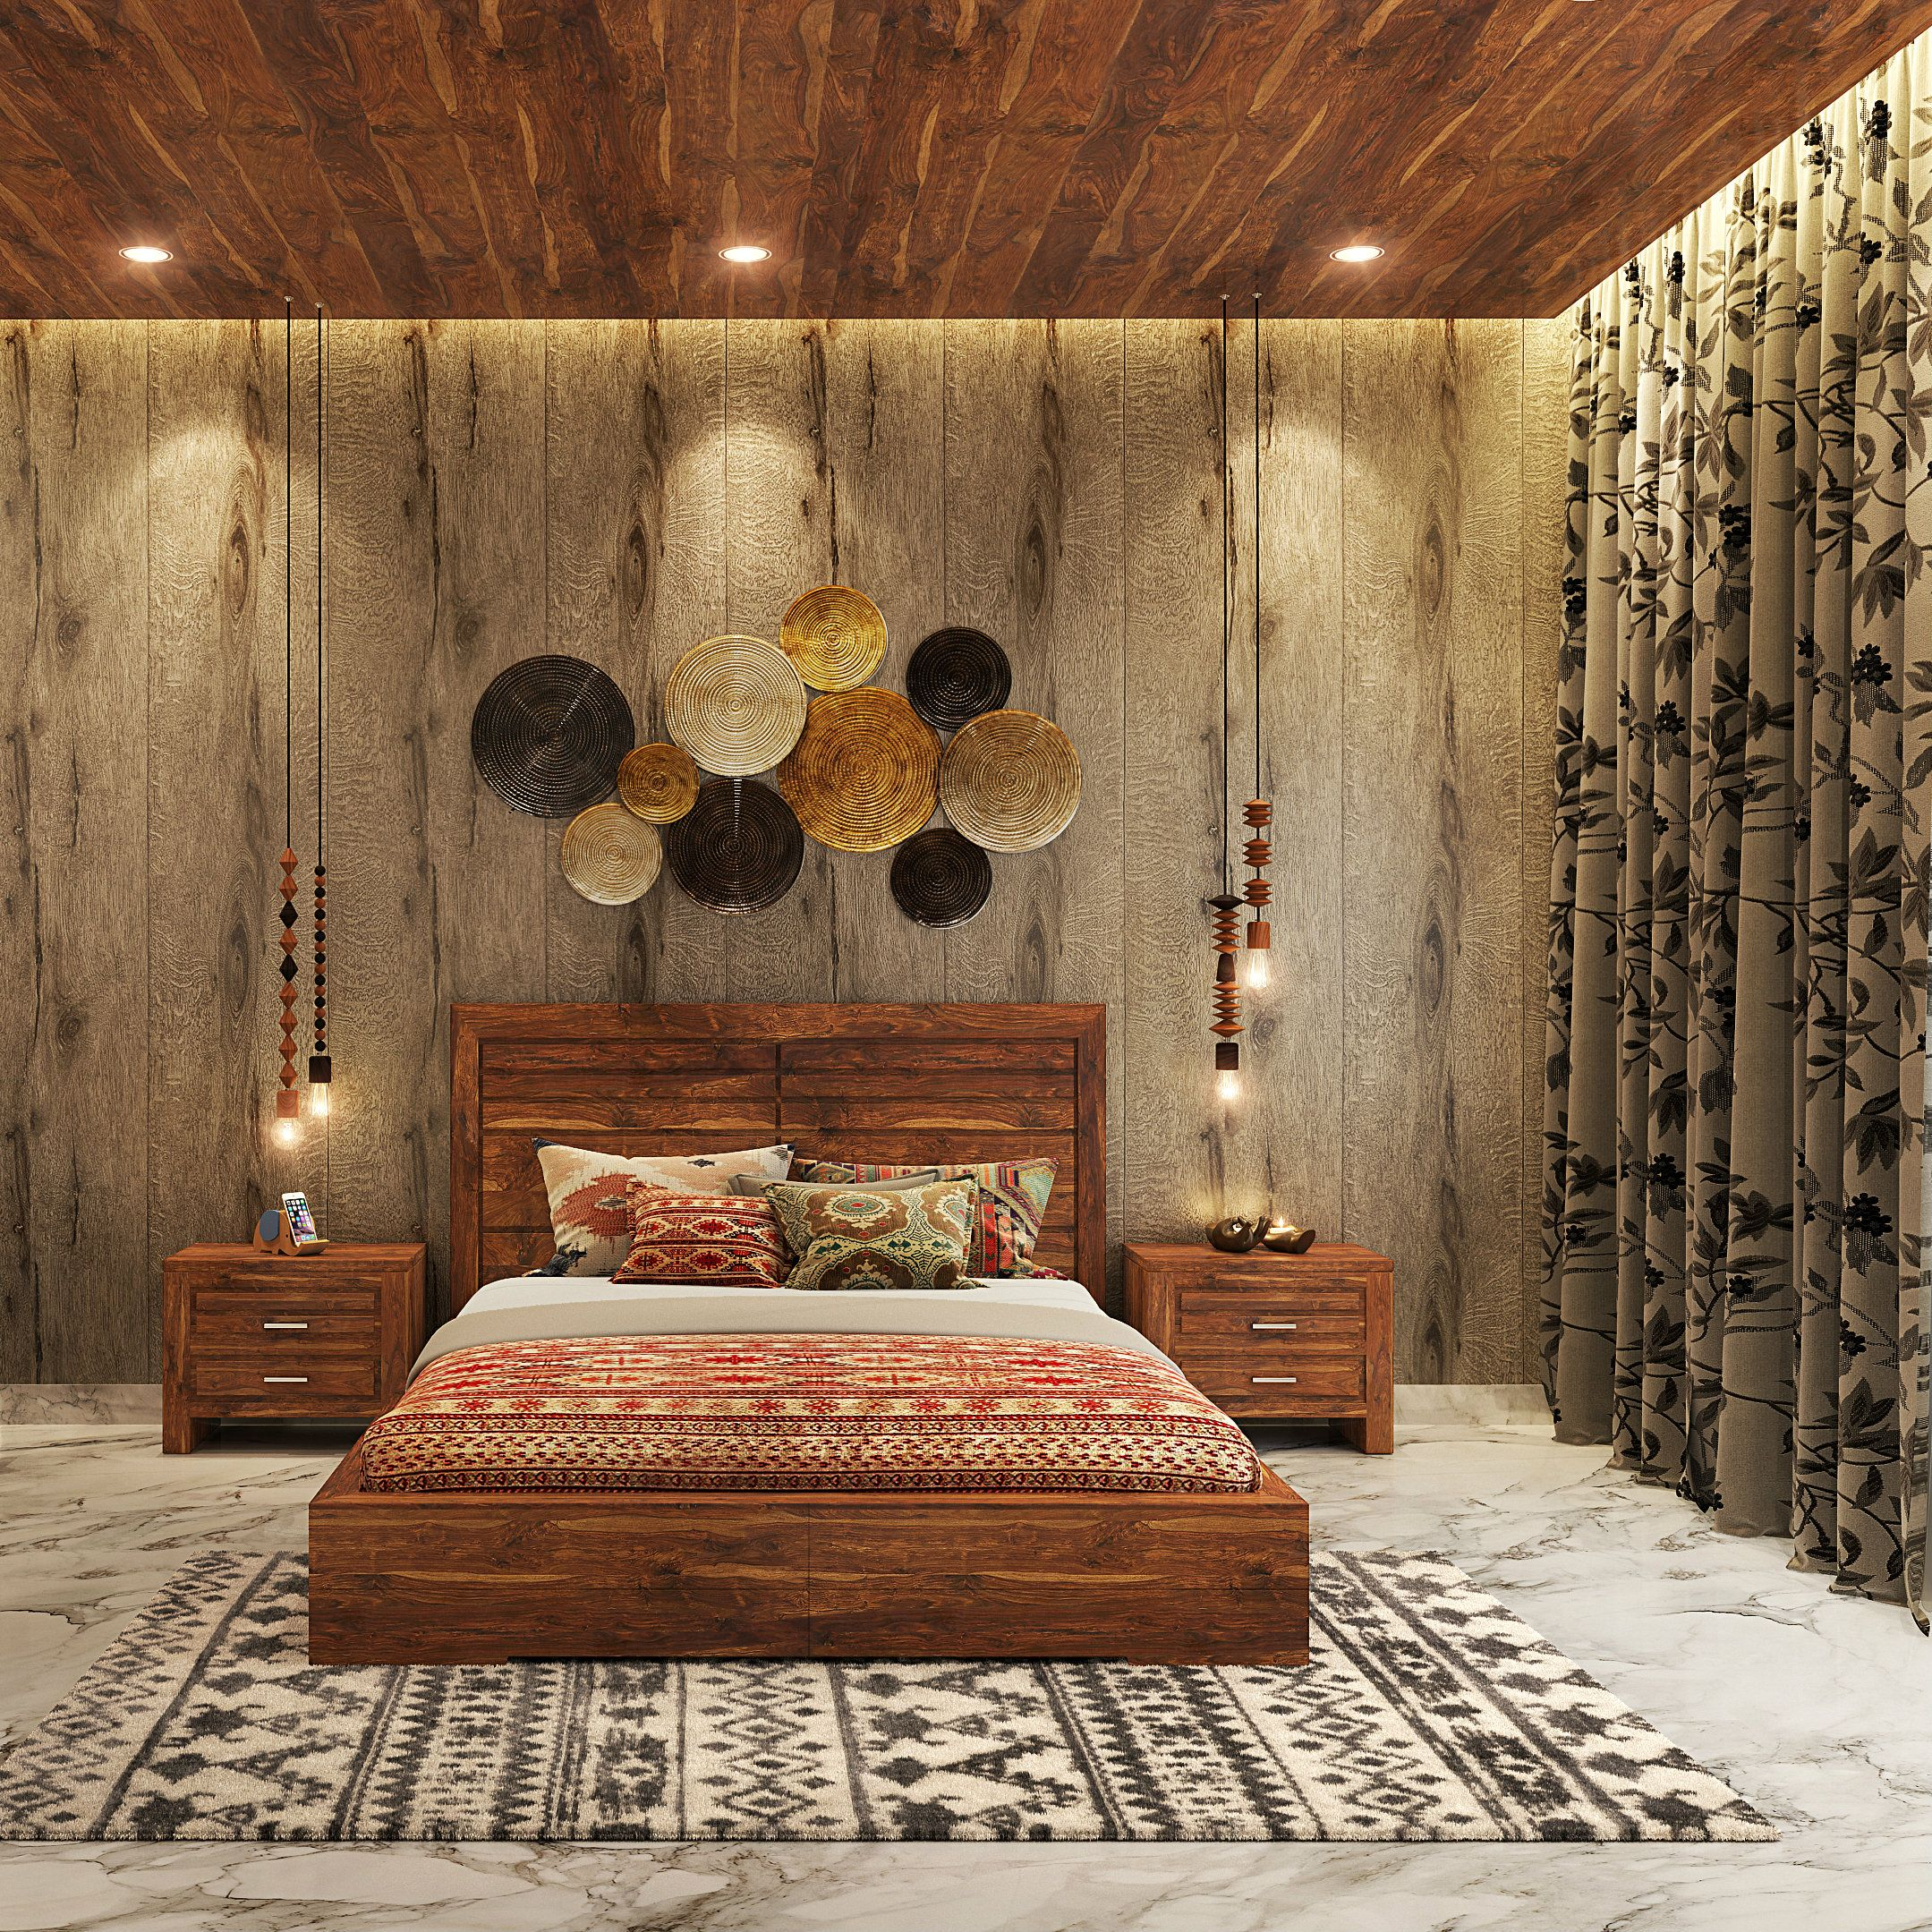 Classic Bedroom Design. Natural Wood Grain Texture